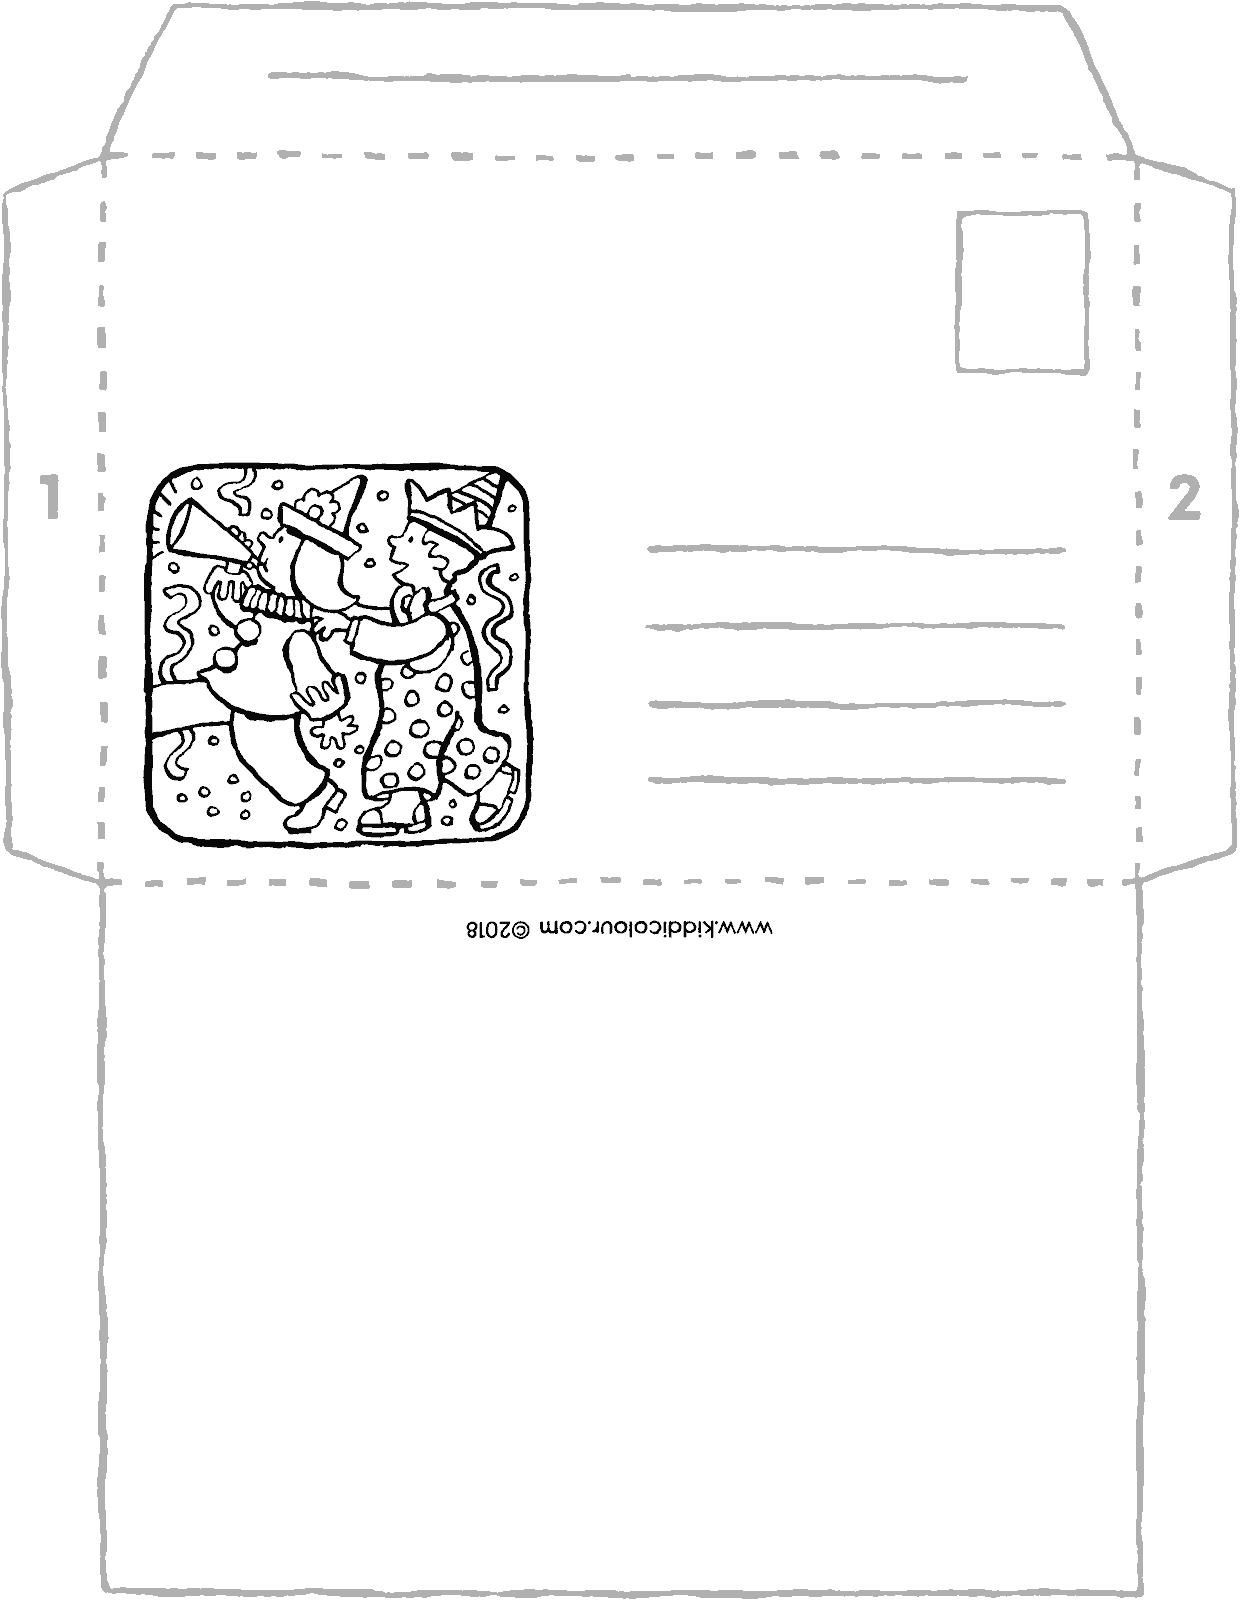 crafts carnival envelope colouring page drawing picture 01V